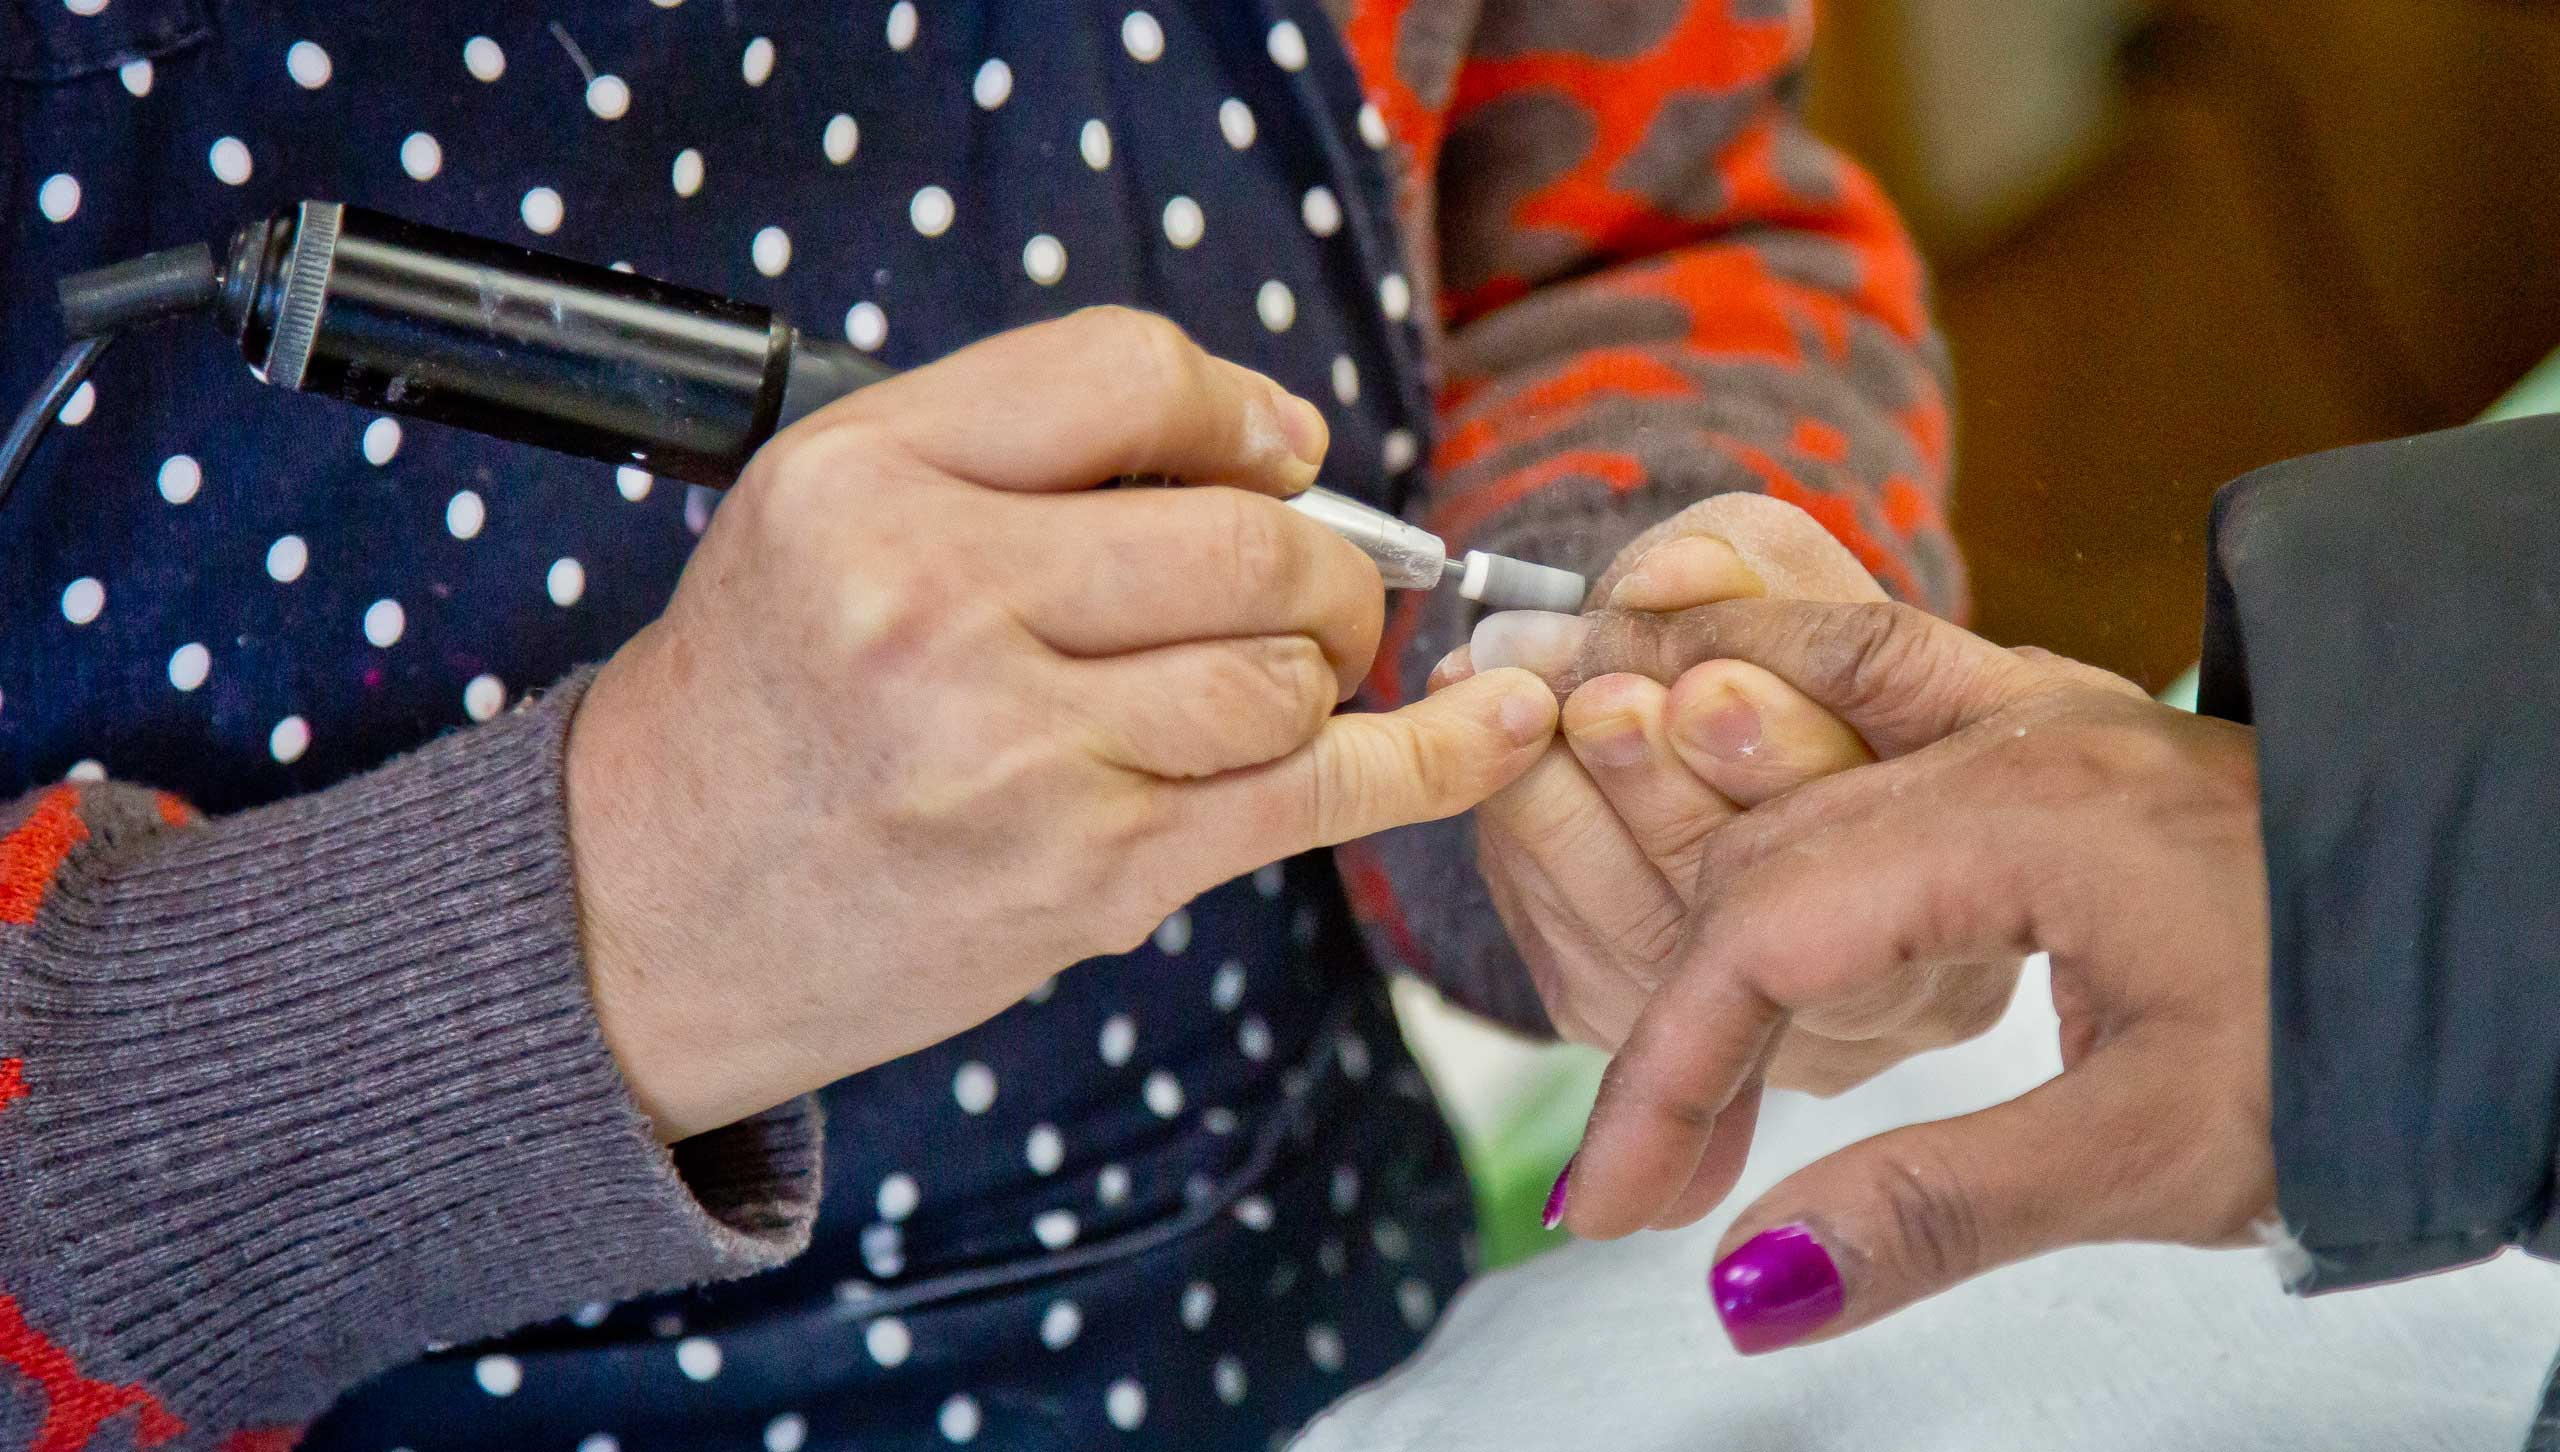 A customer receives a manicure at Castle nail salon in New York City on Jan. 8, 2015.